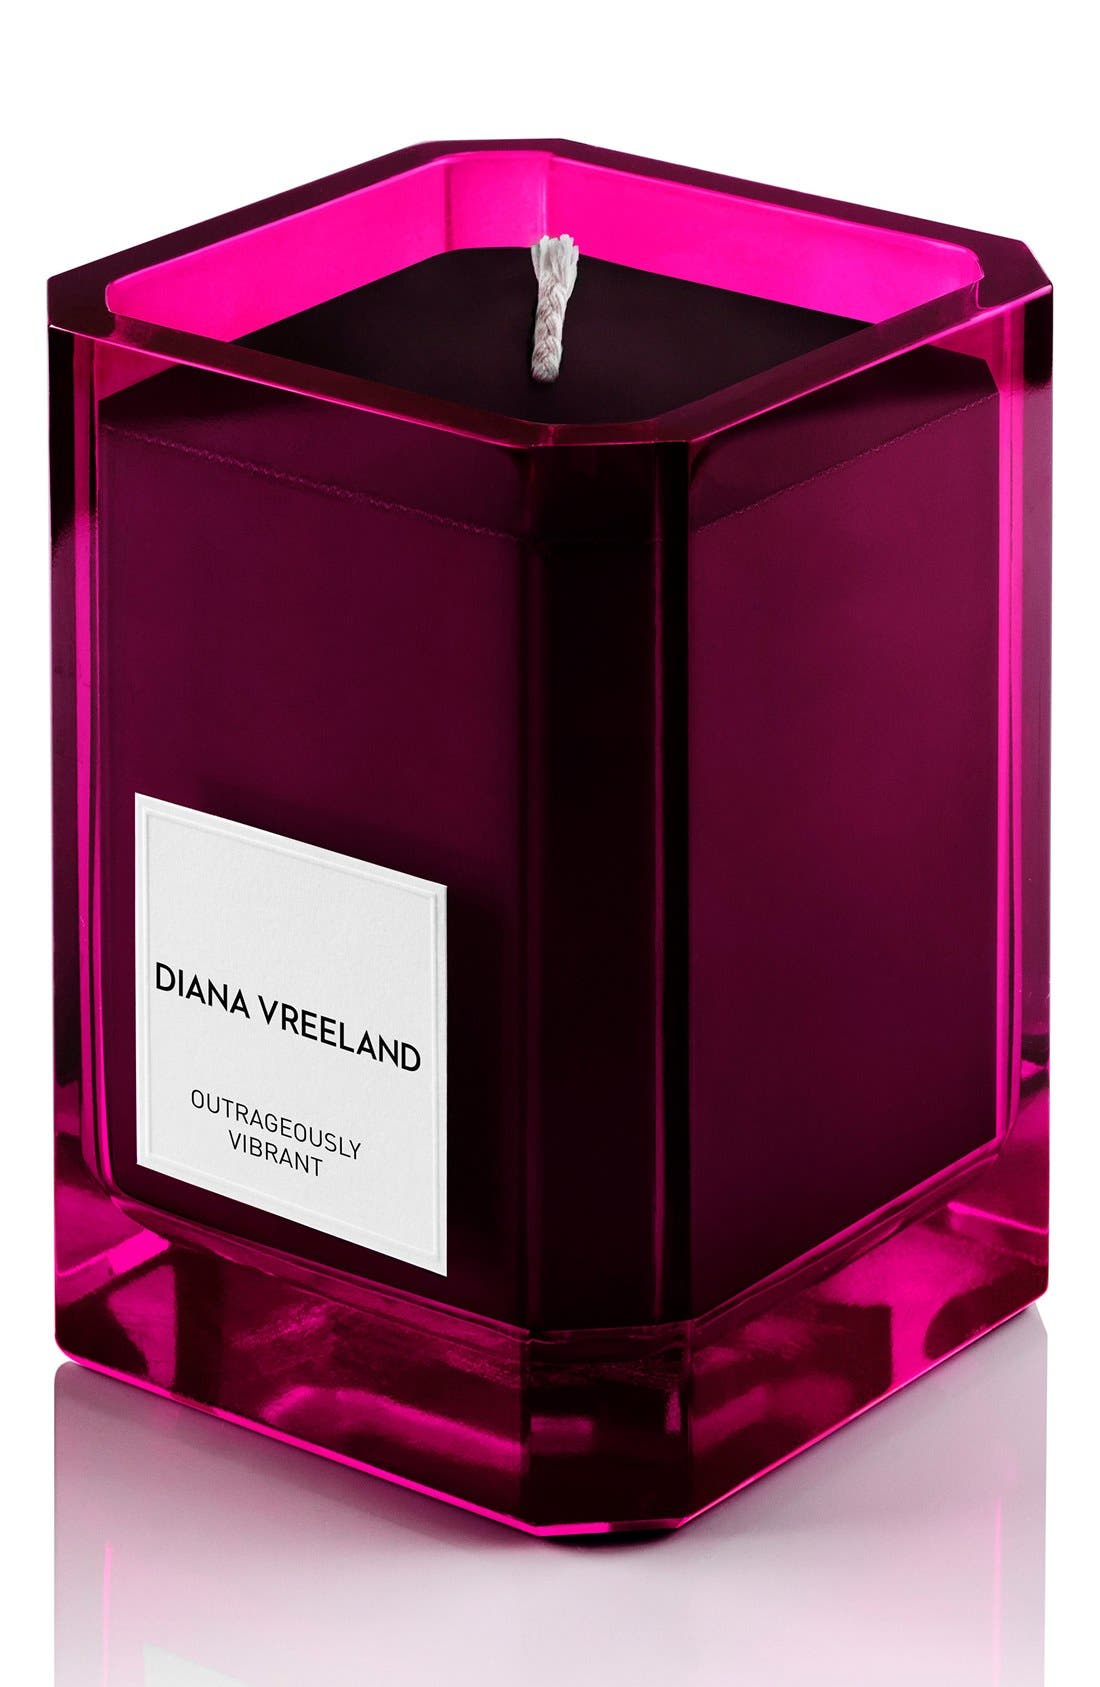 Diana Vreeland 'Outrageously Vibrant' Candle